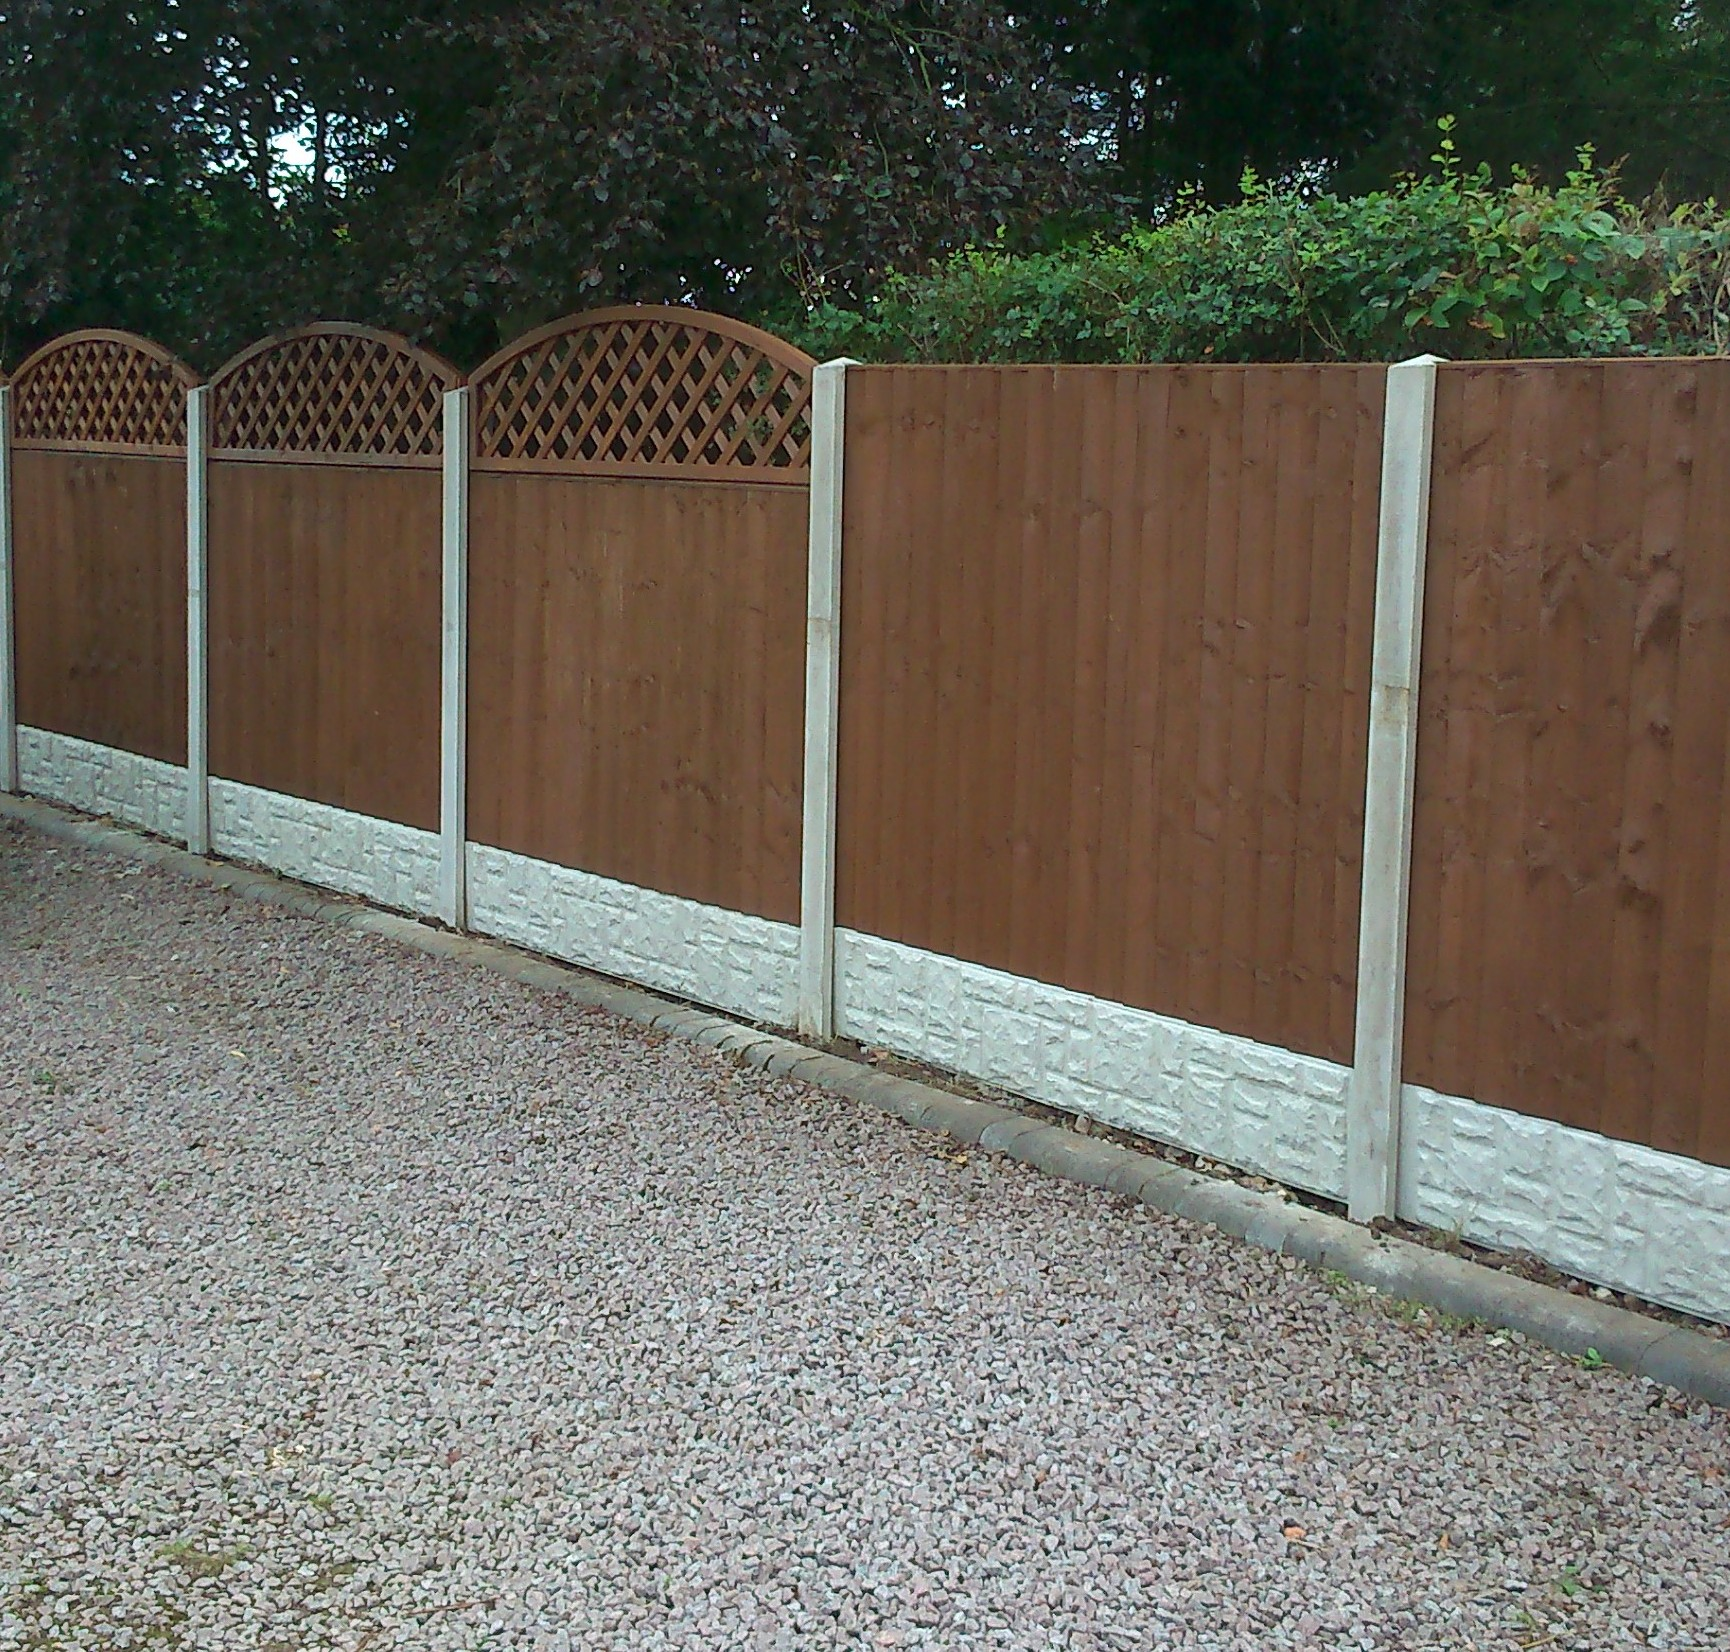 D E P Fencing And Landscaping In Skegness Mablethorpe